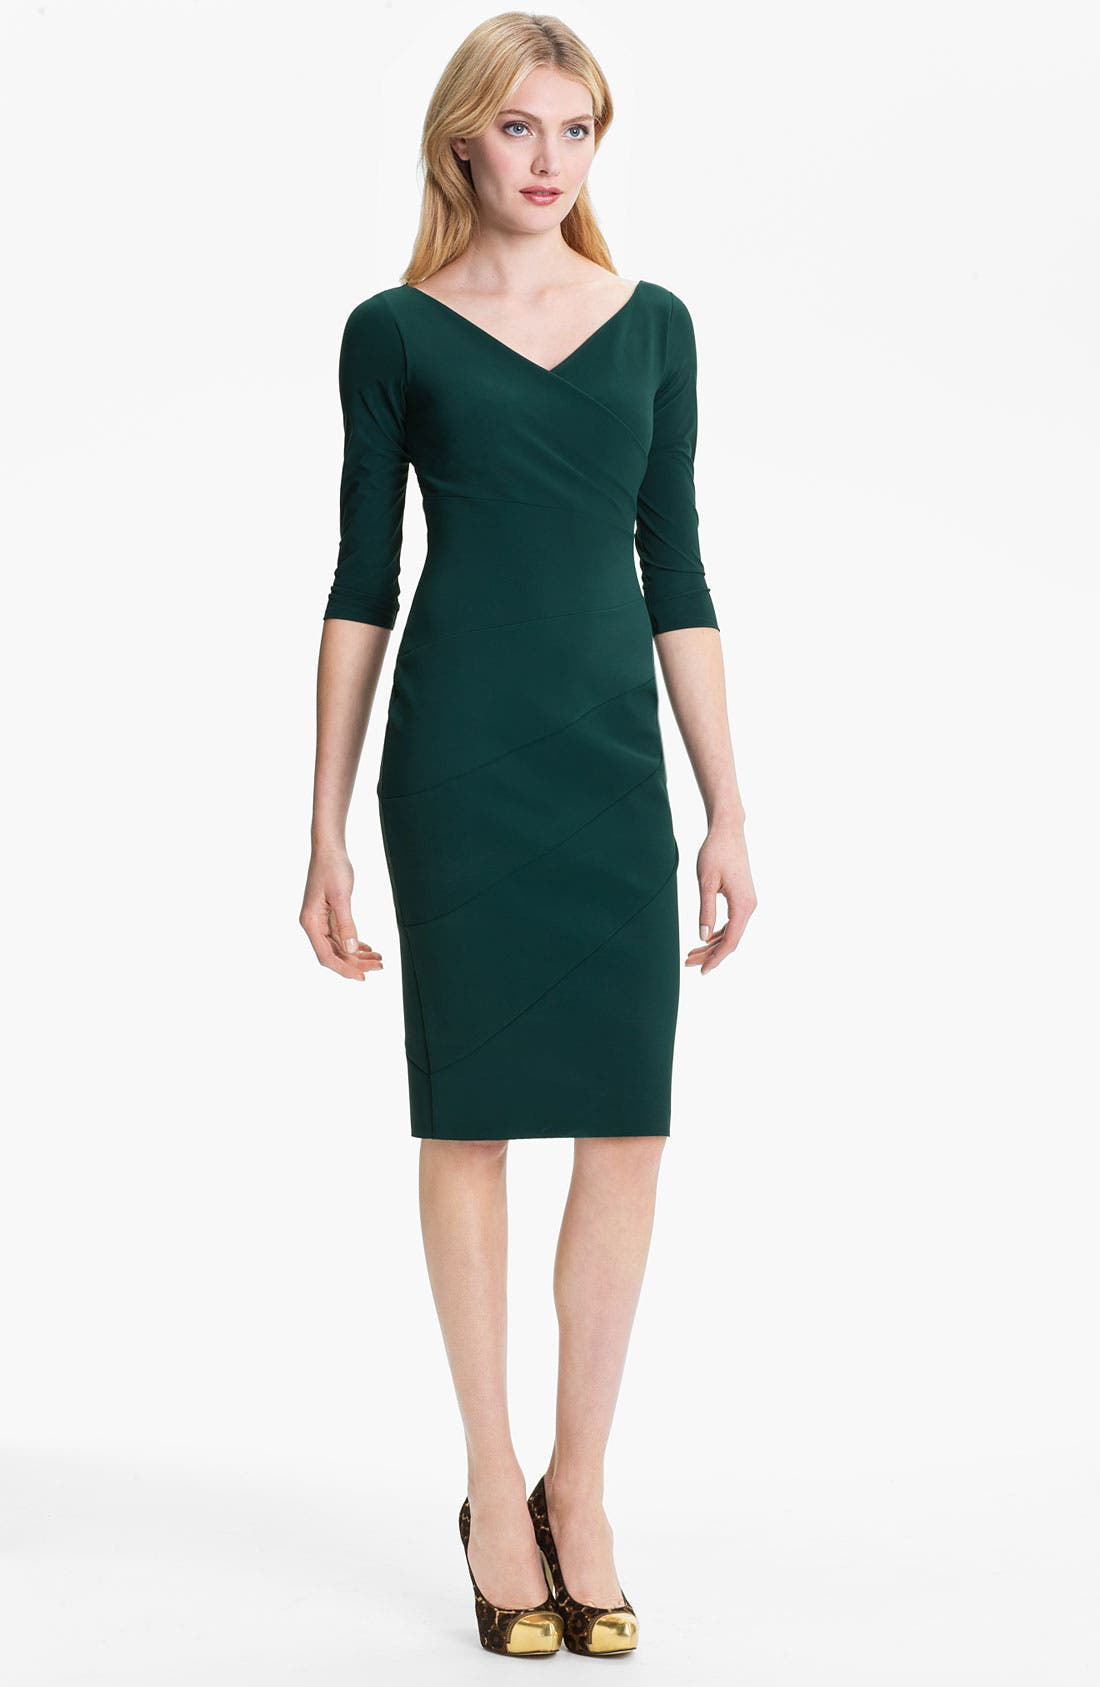 Main Image - La Petite Robe by Chiara Boni V-Neck Seam Detail Sheath Dress